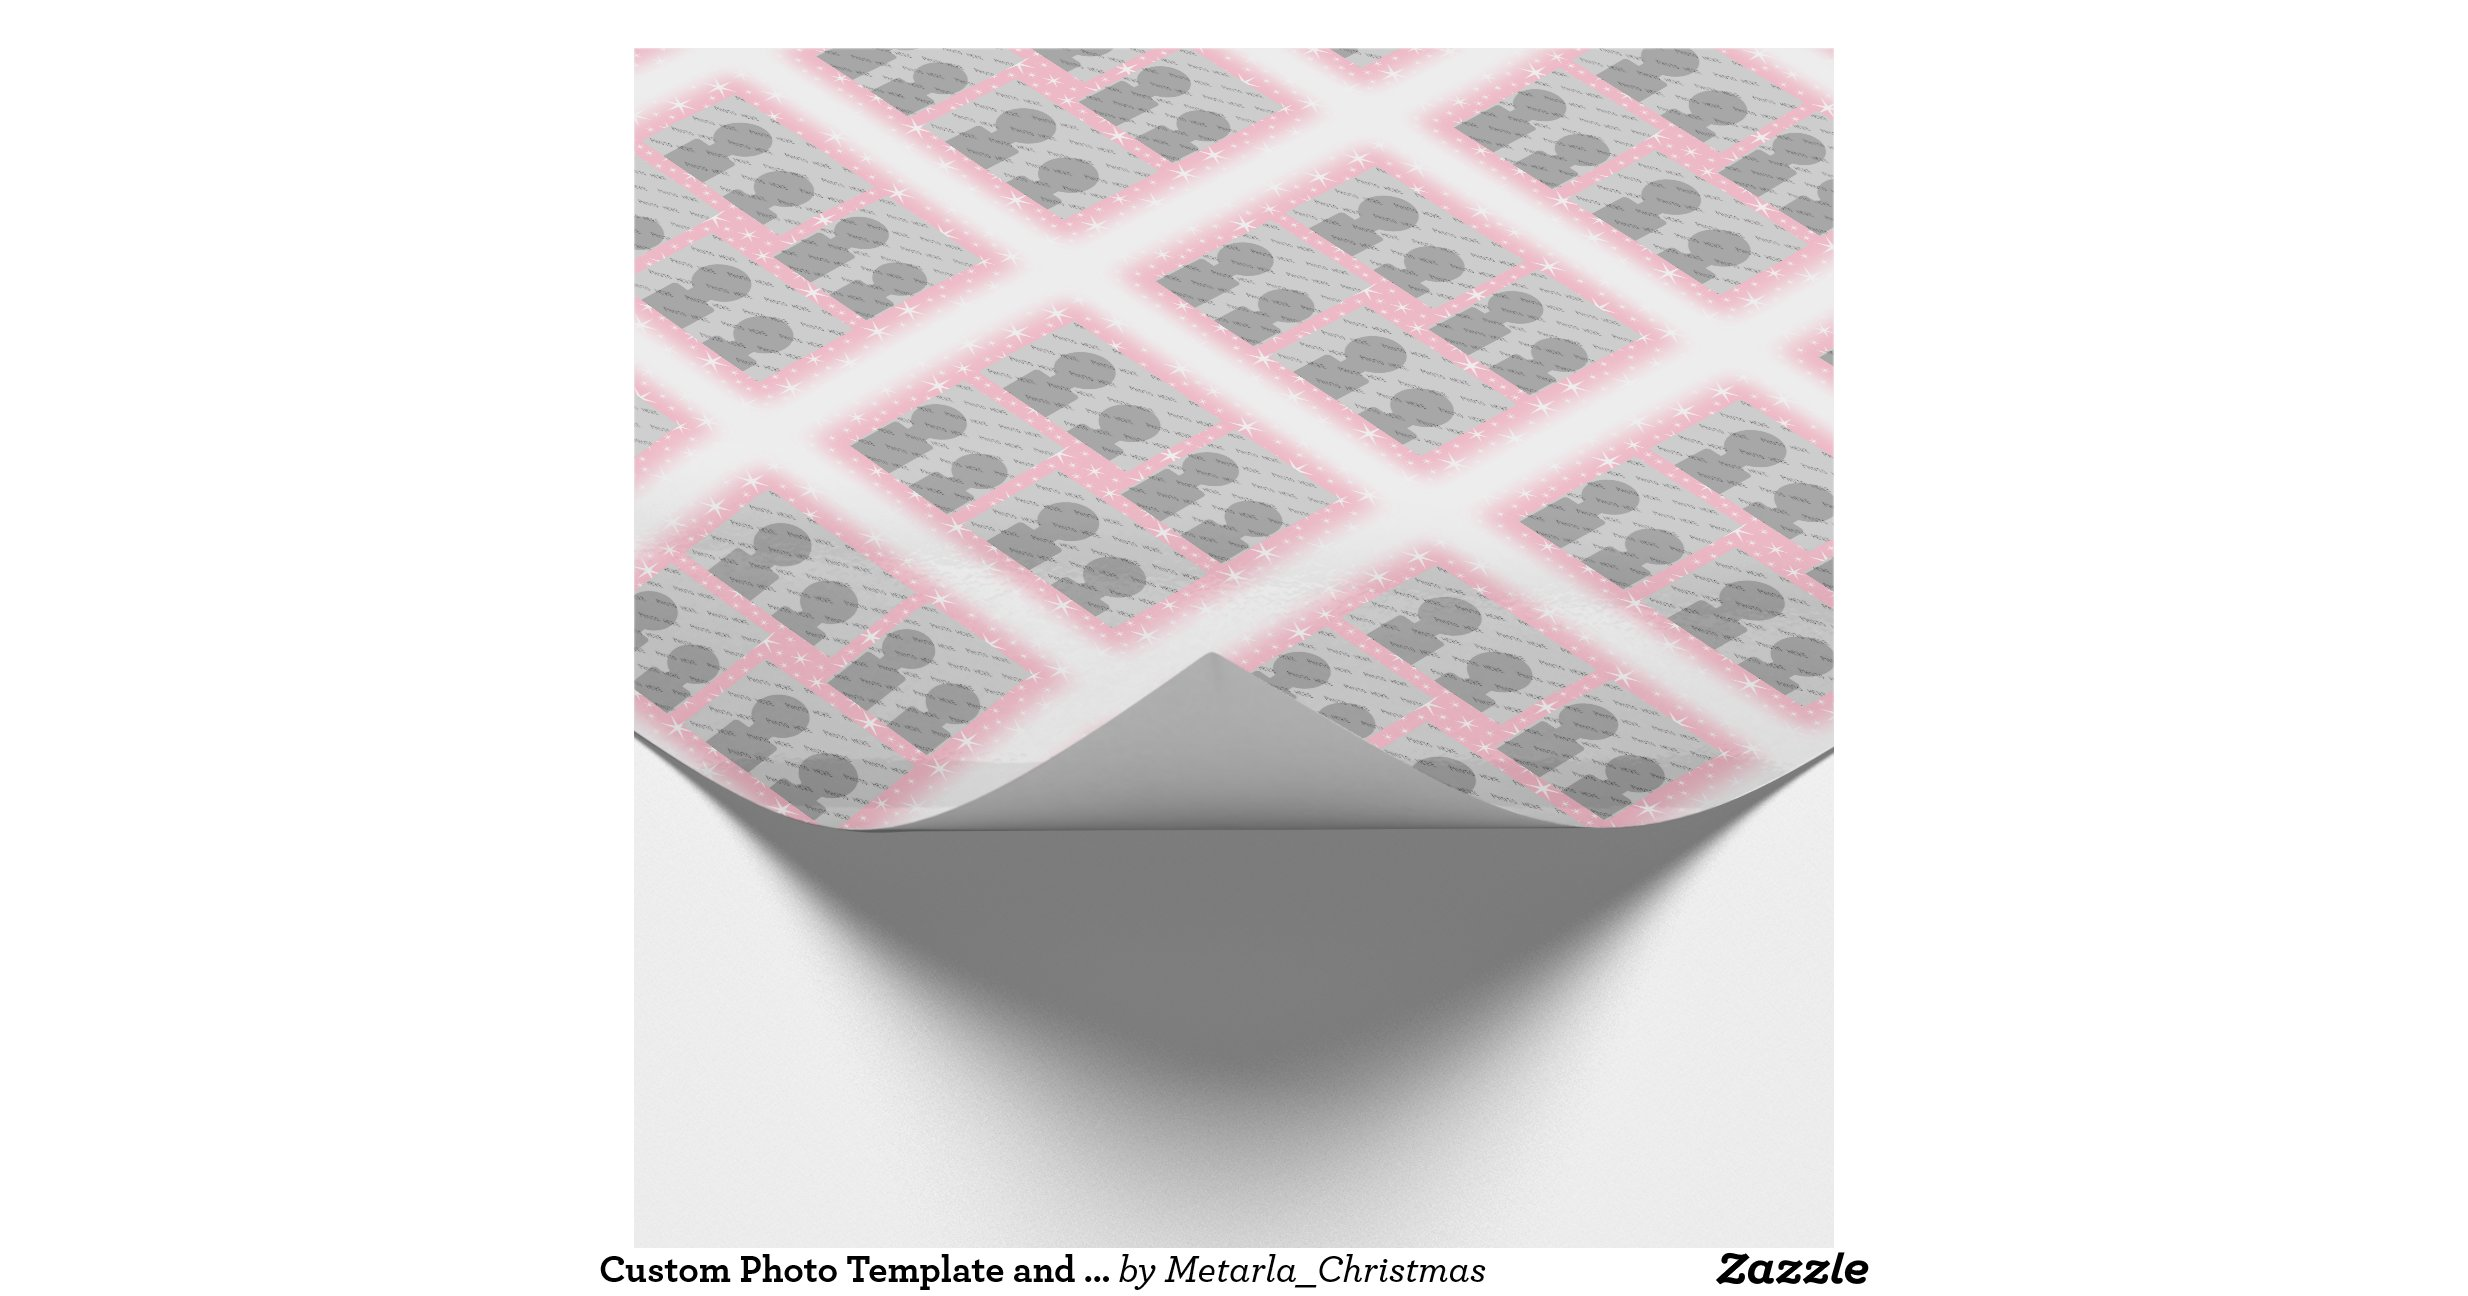 """custom photo wrapping paper Your photo personalized wrapping paper $1670 15% off with code zazzfallprep 8 bit brick wall wrapping paper $1495  custom wrapping paper """"i had a very difficult time creating this wrapping paper because i had never done it before i had no idea it would turn out as well as it did it was a gift and my friend loved it."""